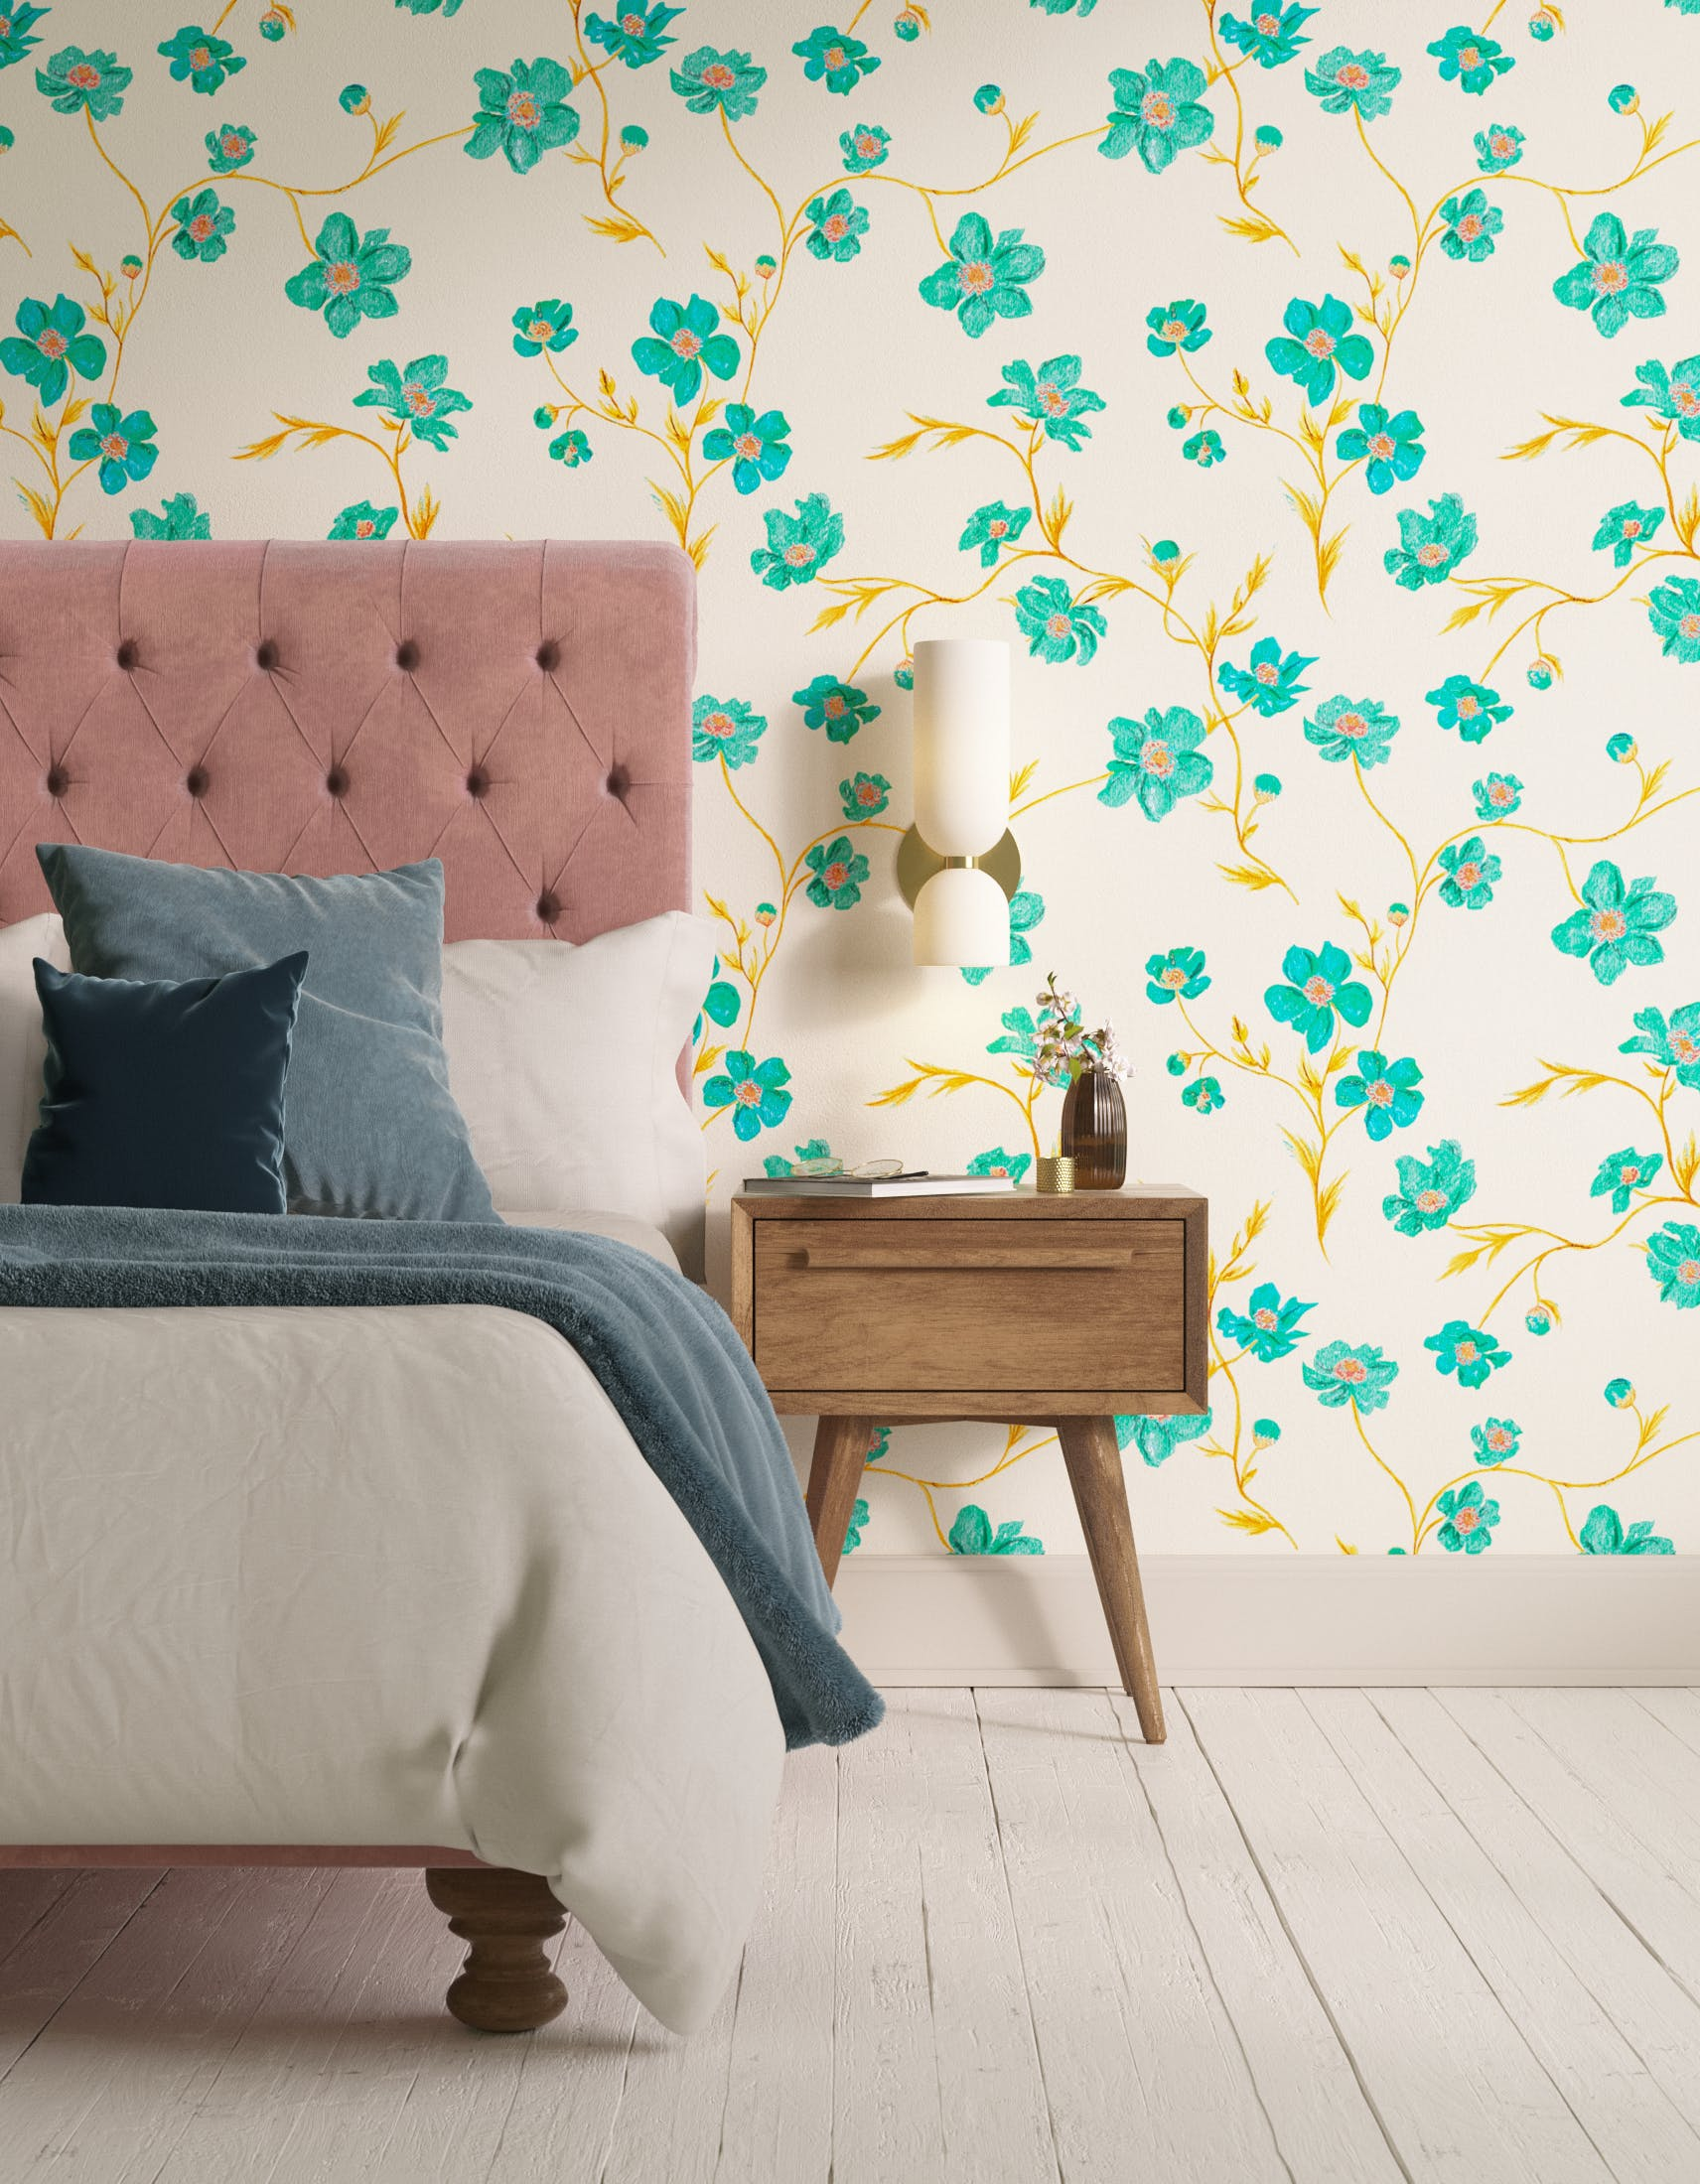 Bedroom decorated with Lick x Jenna Hewitt Anemone 01 turquoise floral wallpaper